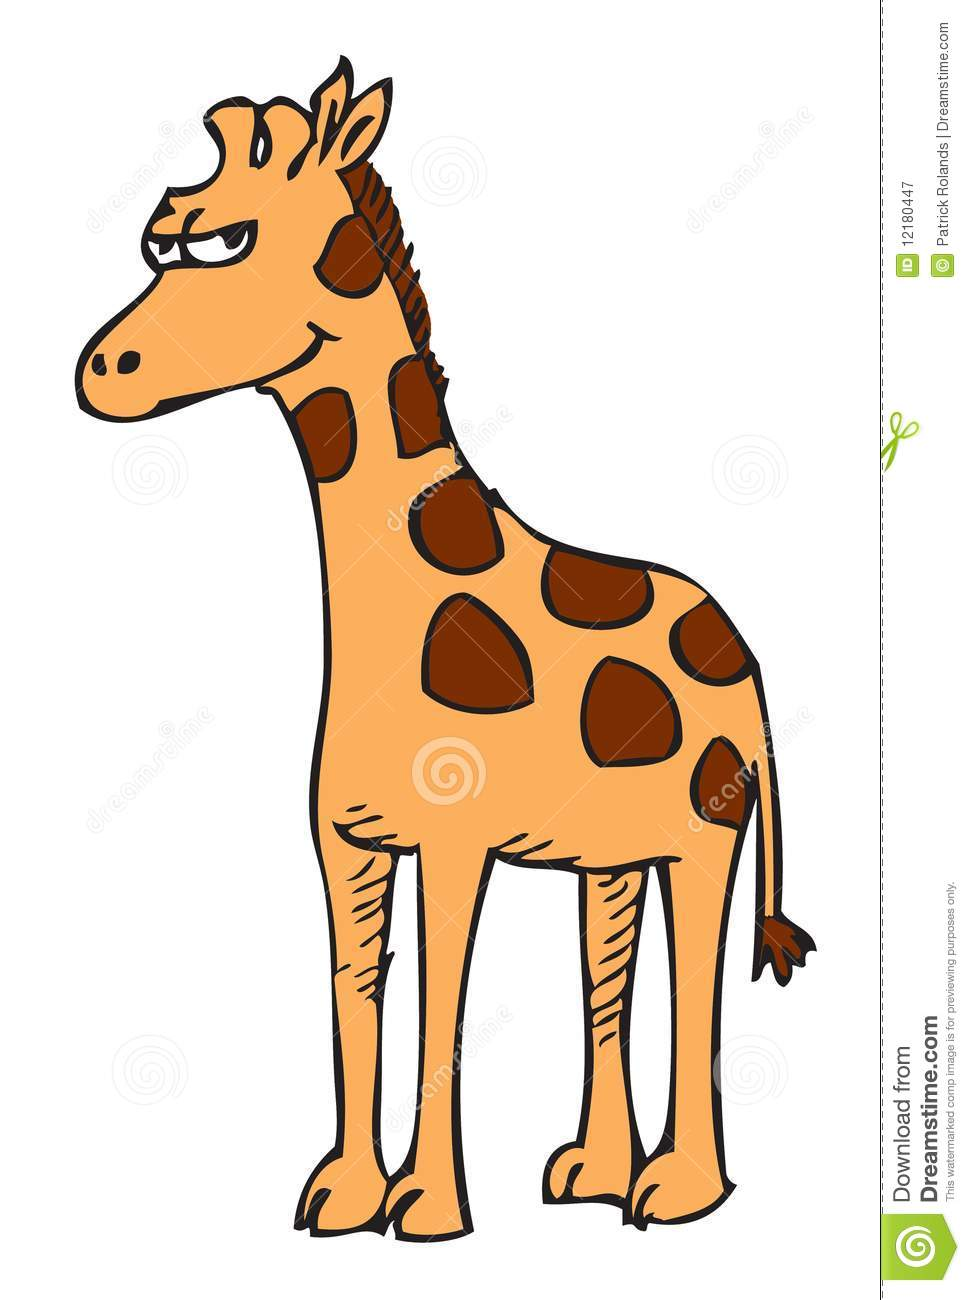 Cartoon Giraffe Royalty Free Stock Photography - Image ...